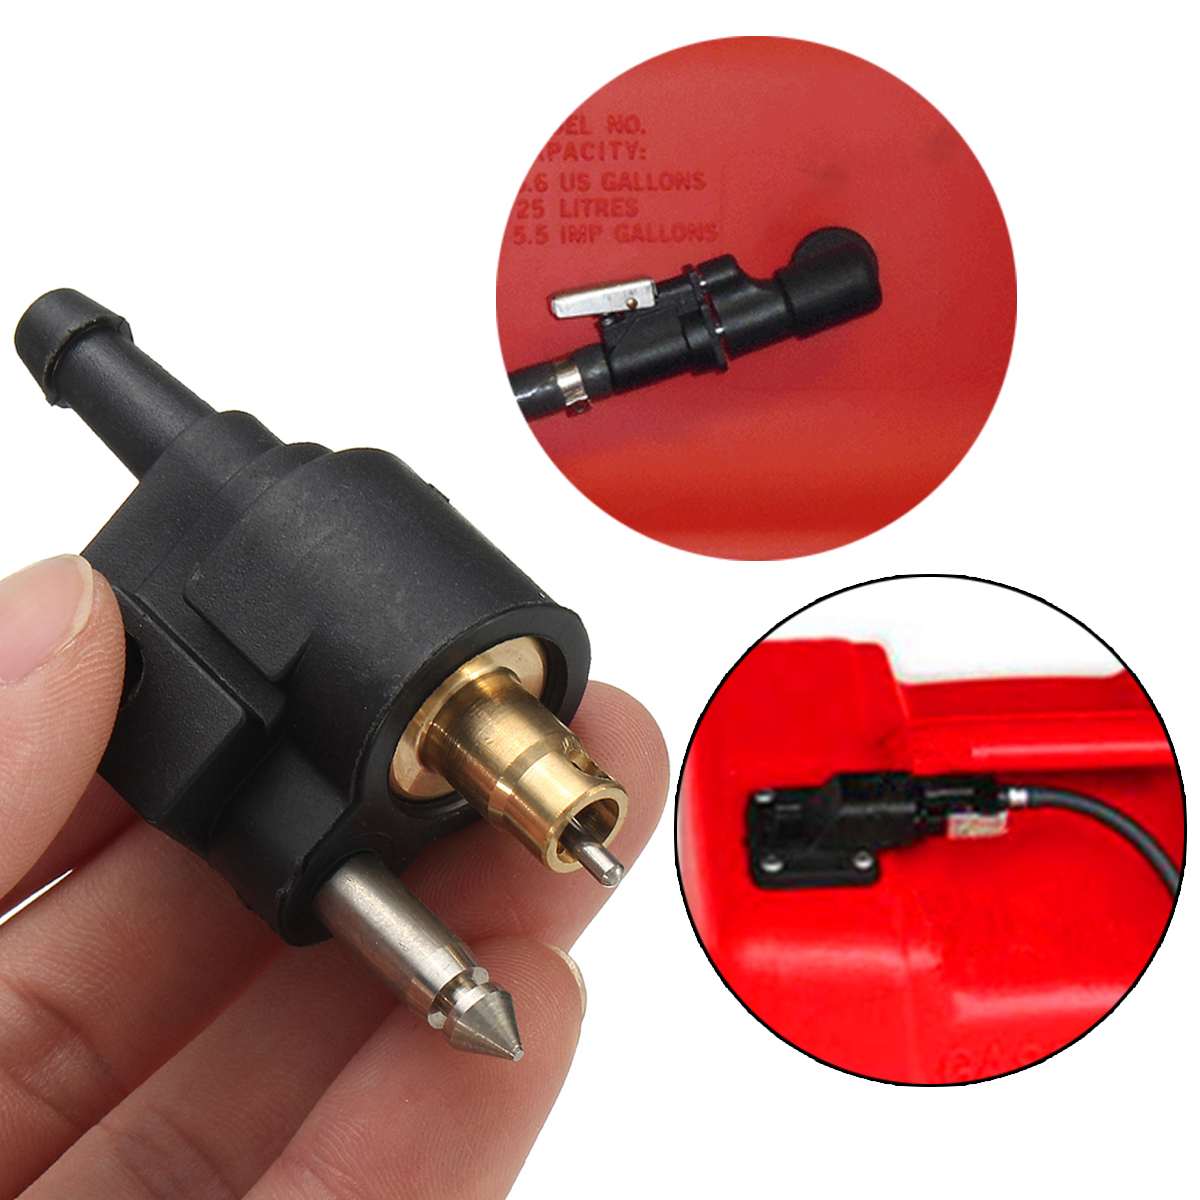 Fuel line tank connector for yamaha outboard motor engine